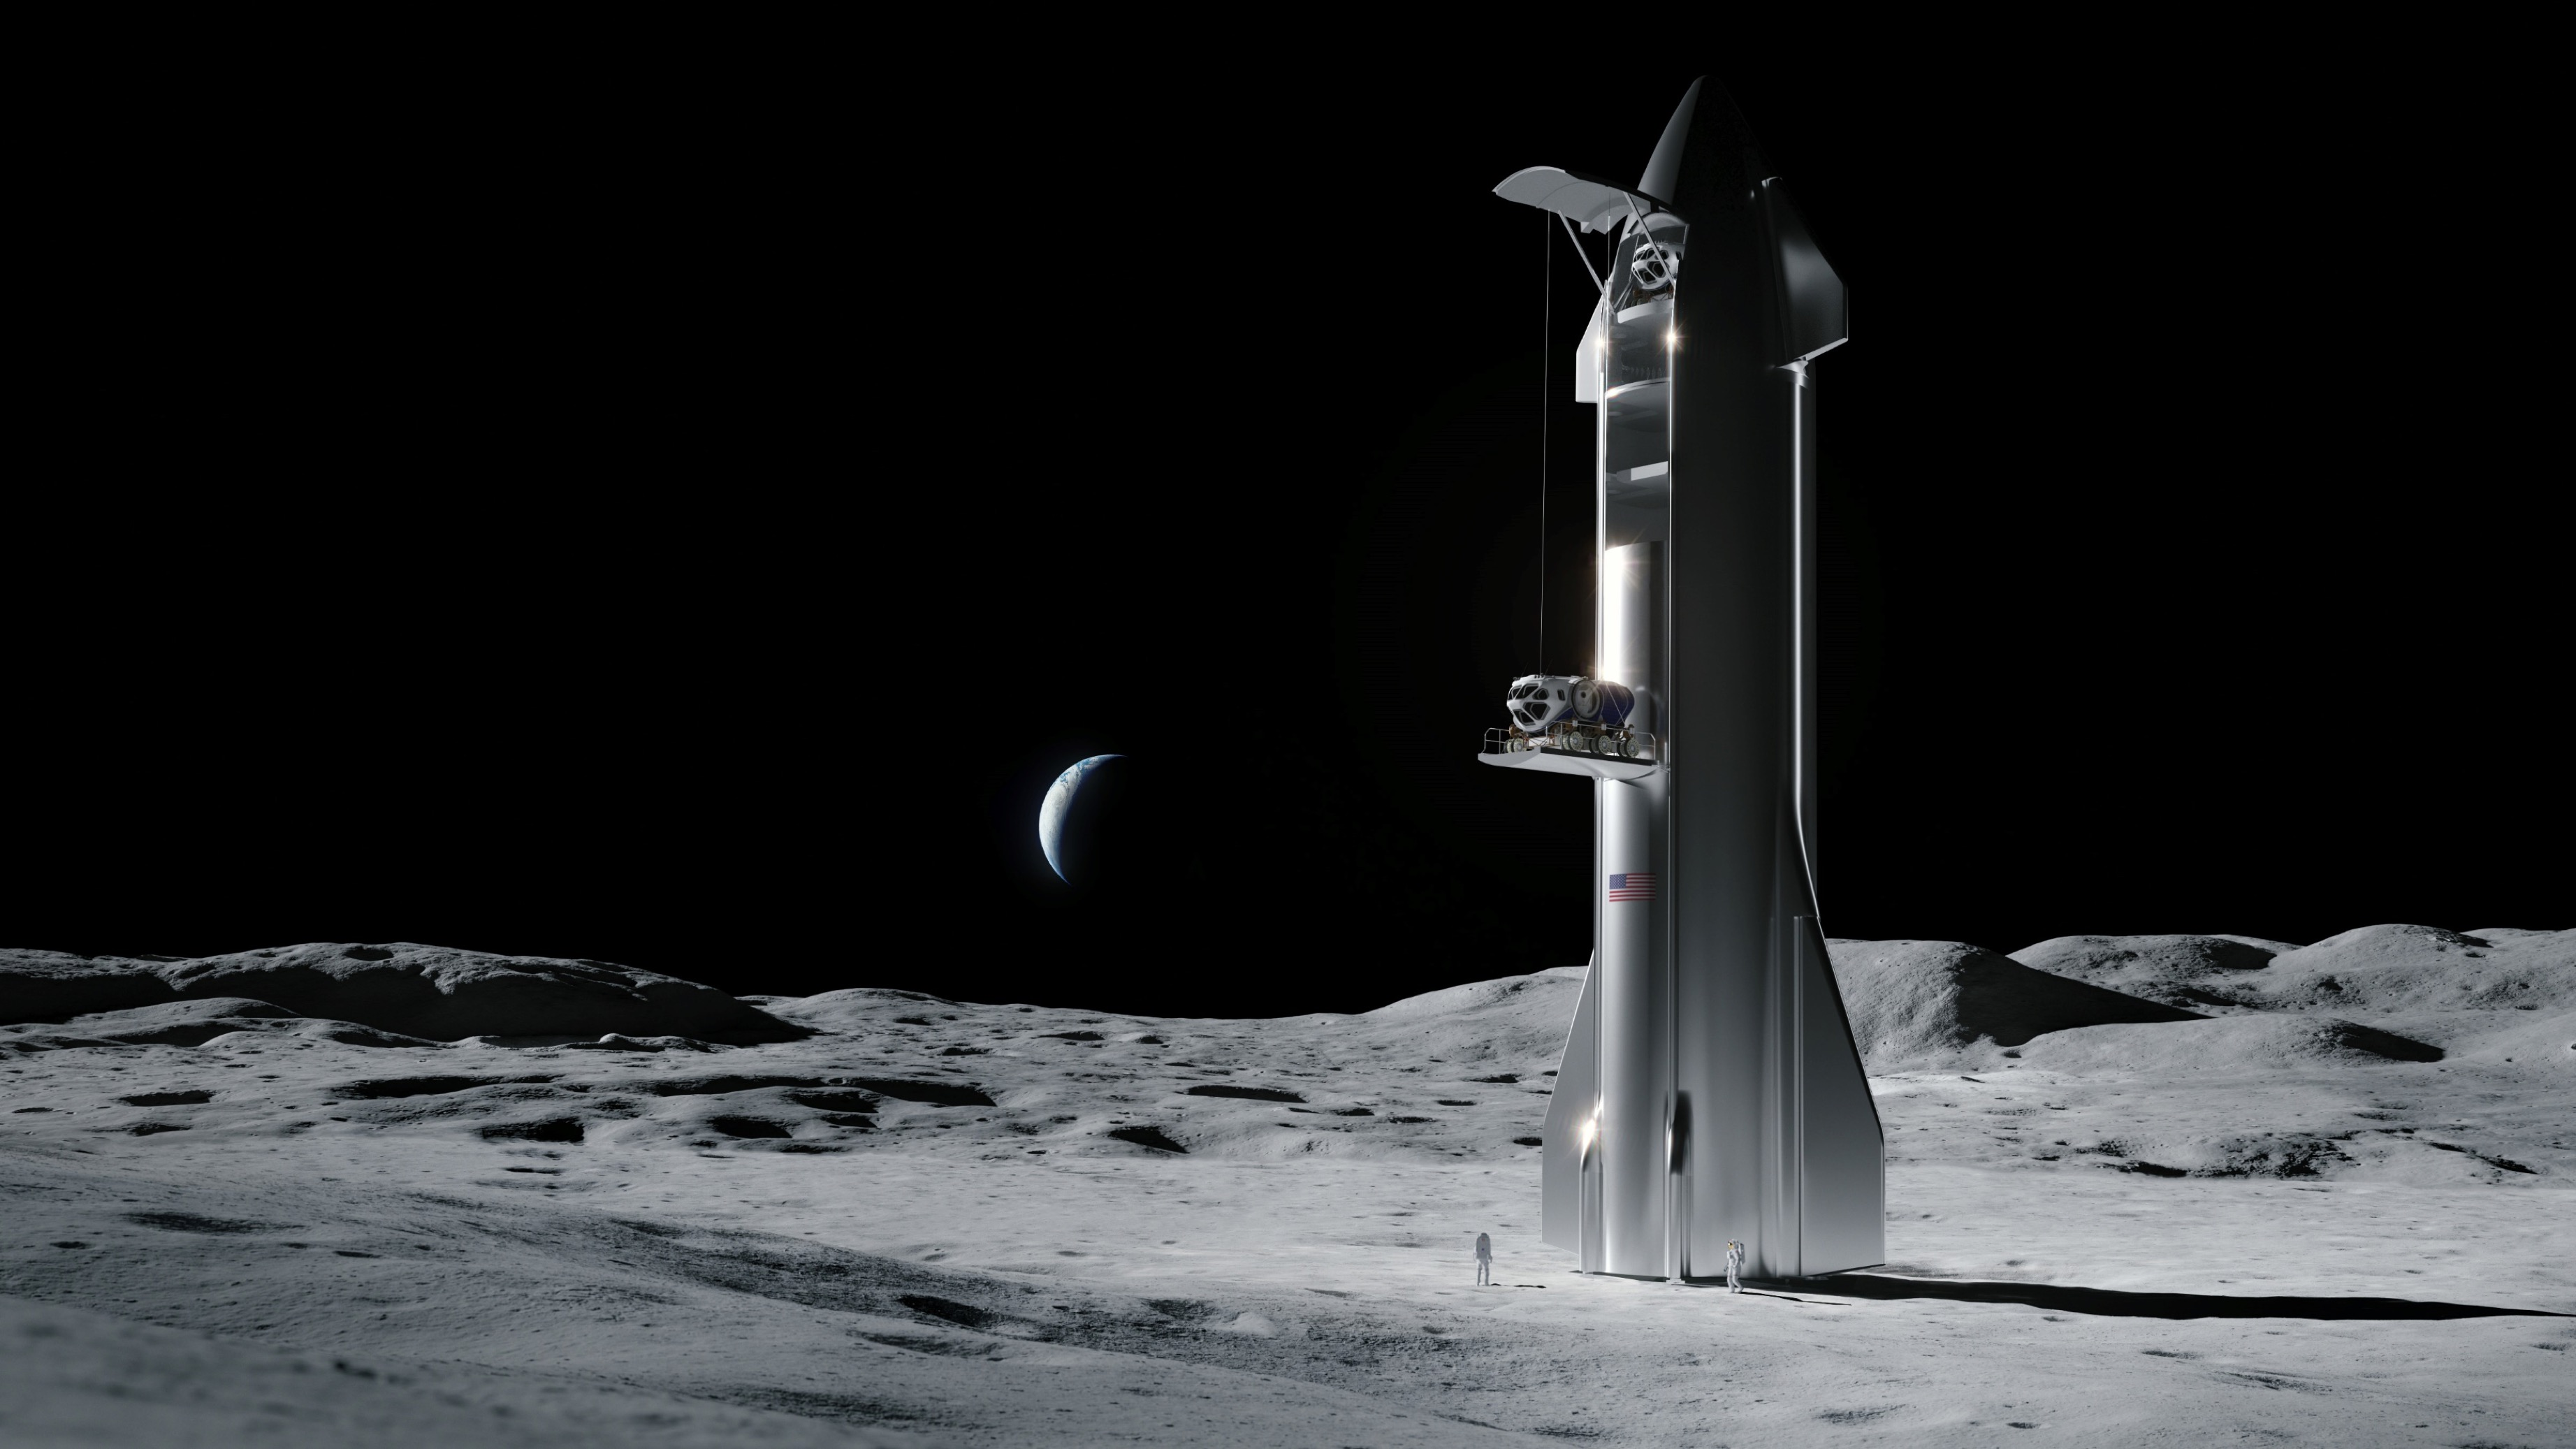 SpaceX unveils users' guide for giant Starship rocket | Space